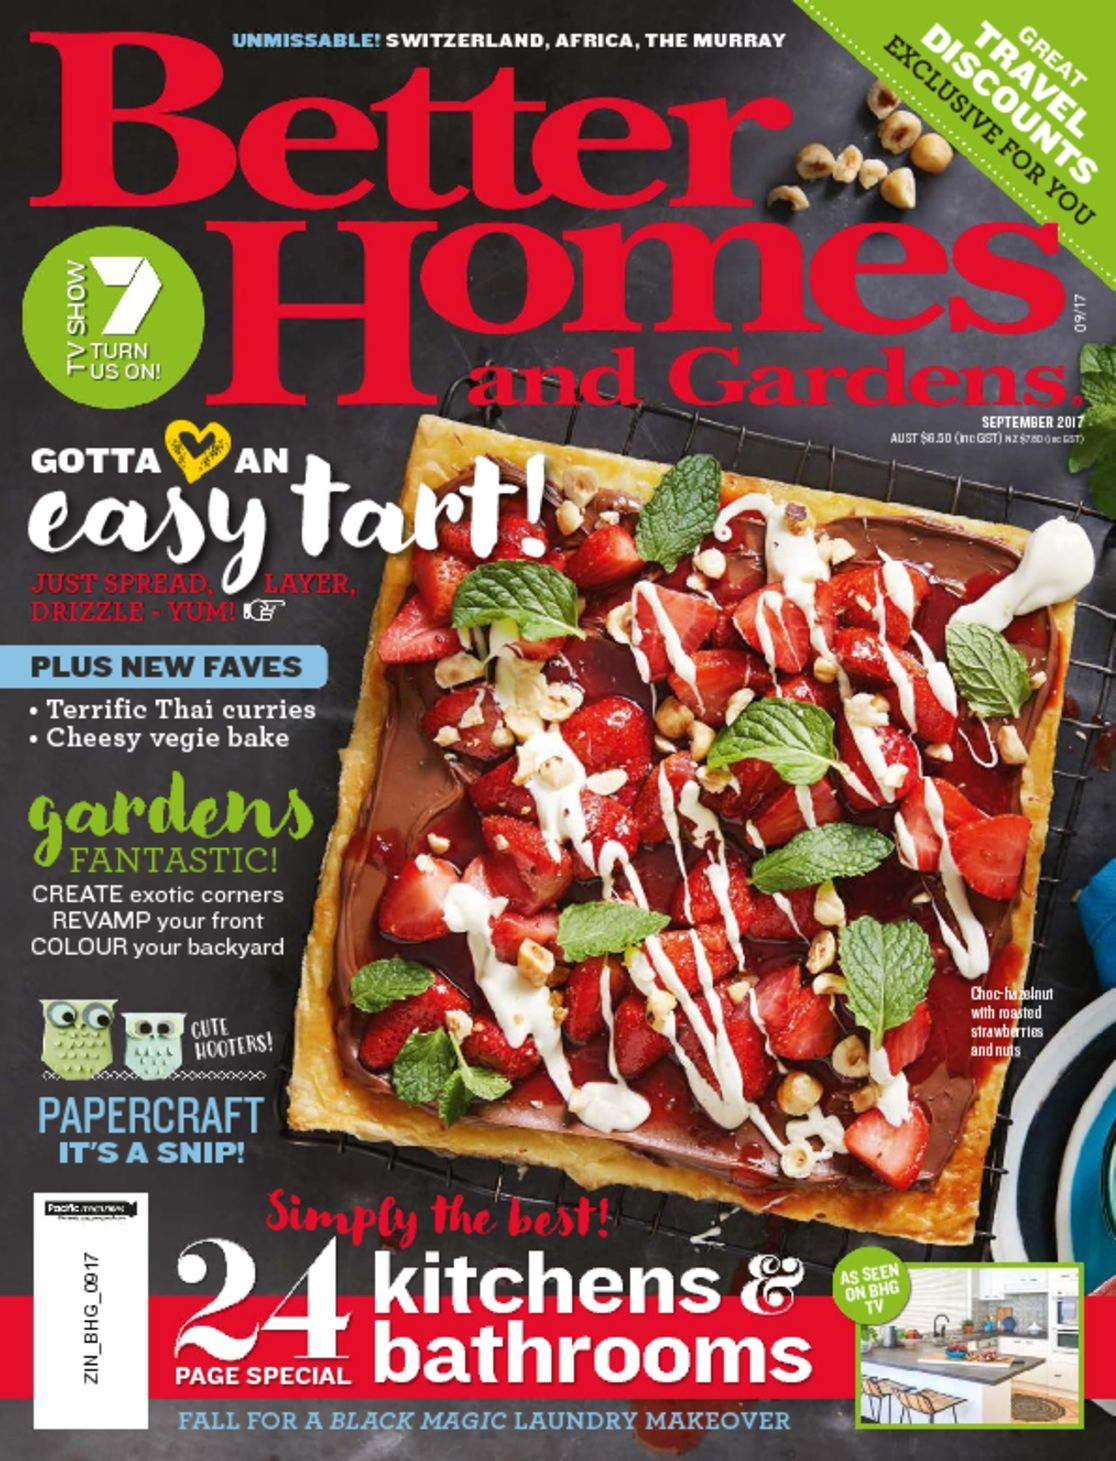 Better homes and gardens australia magazine digital Better homes and gardens current issue